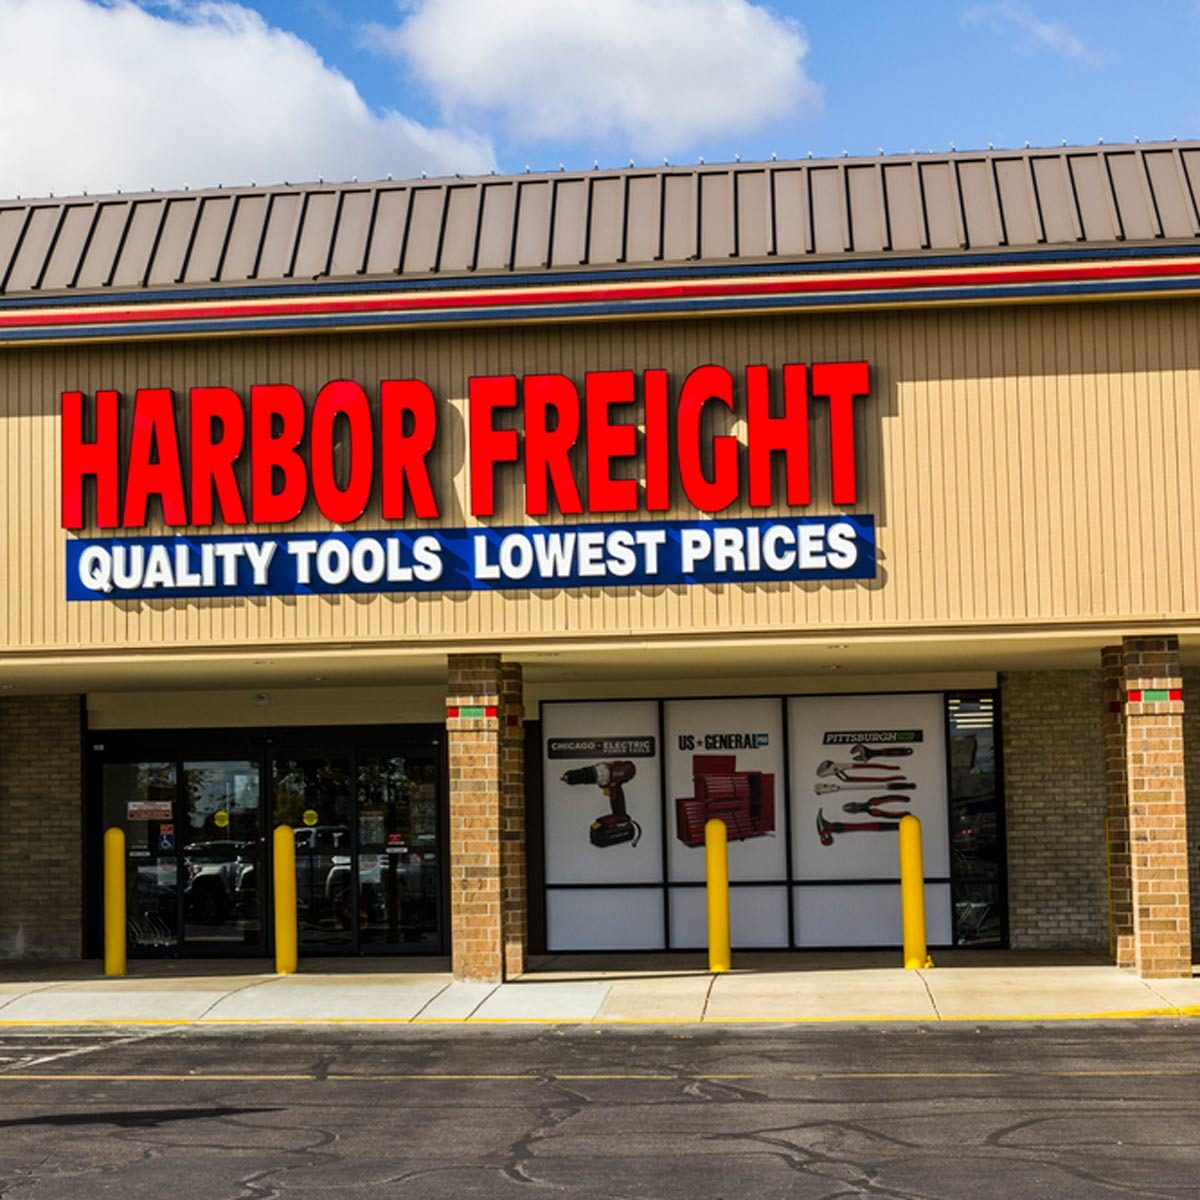 Join Harbor Freight S Inside Track Club To Save Even More